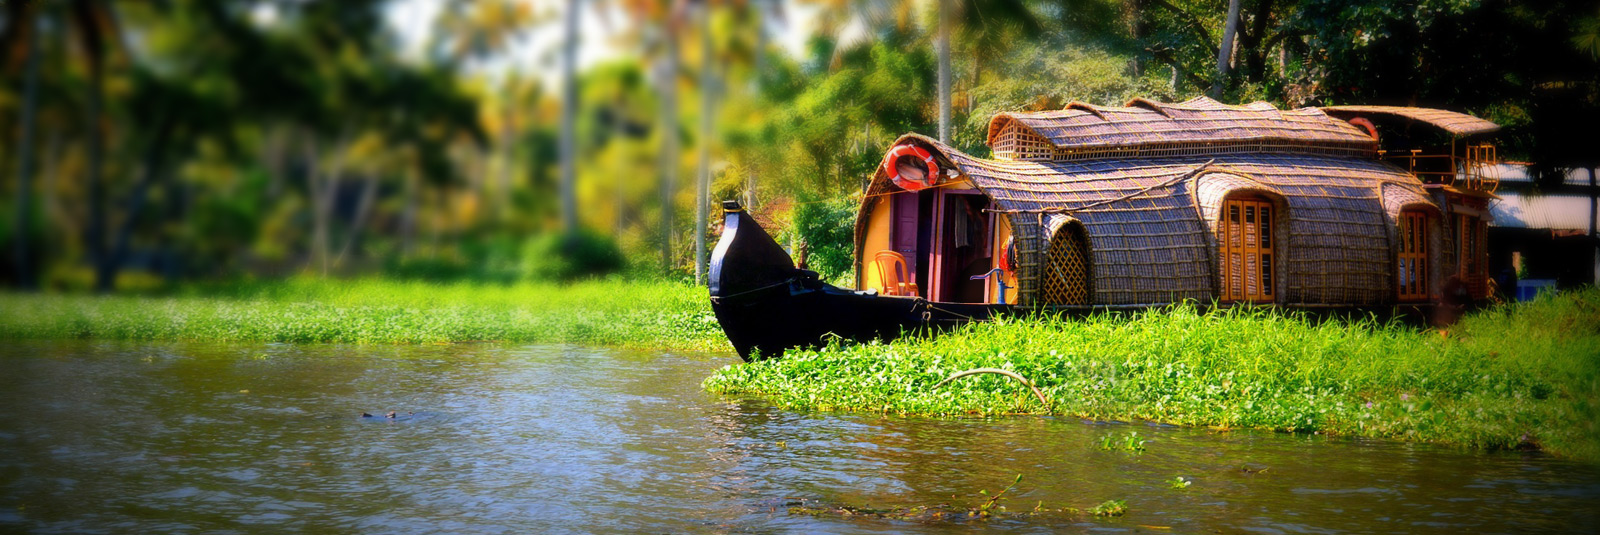 travel_world_kerala_houseboat